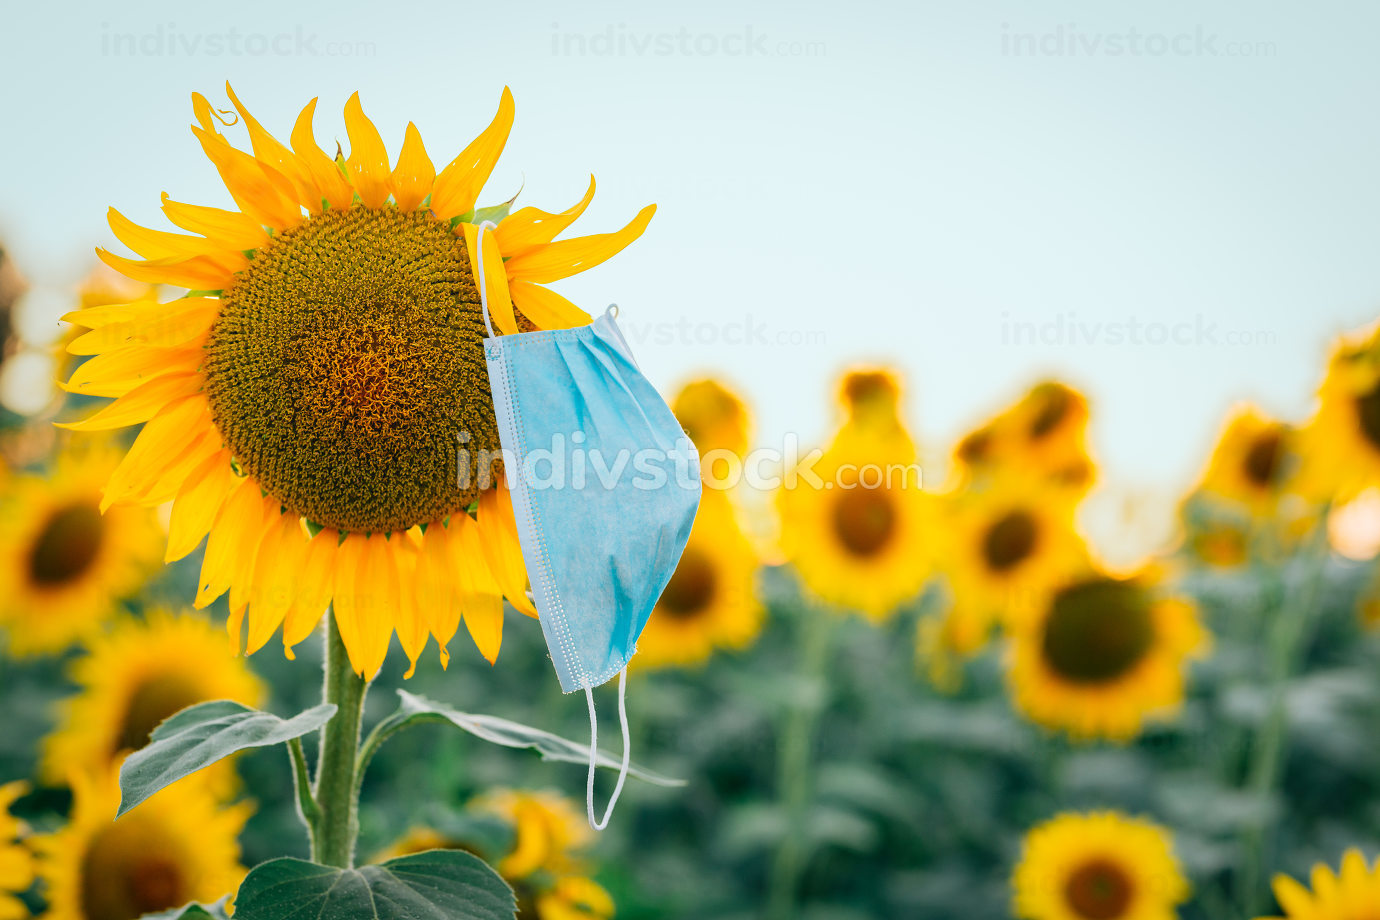 medical mask on a sunflower in the field.